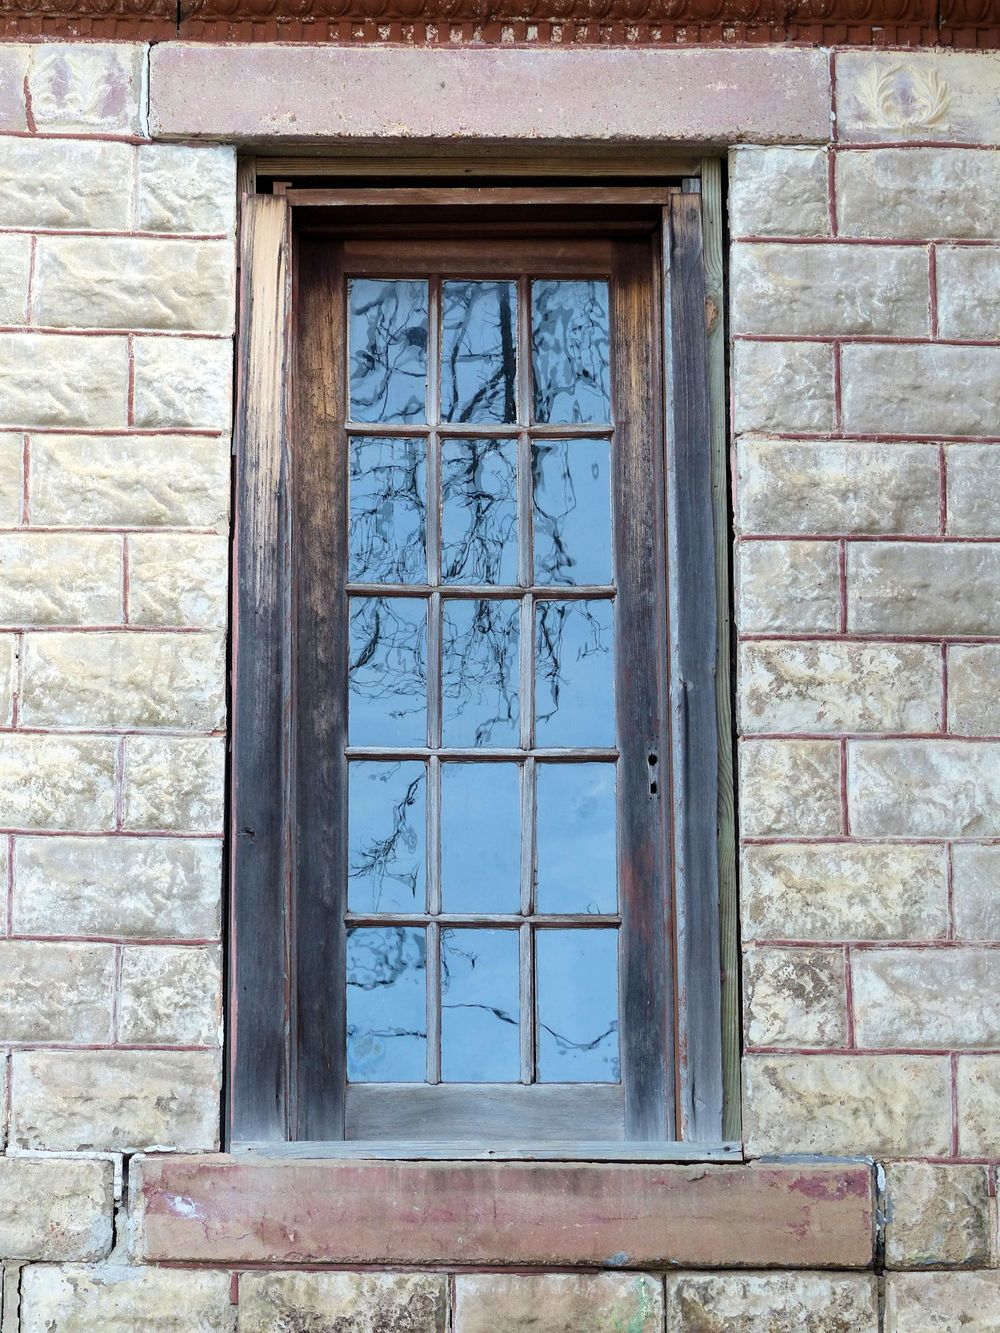 Creepy window on abandoned building